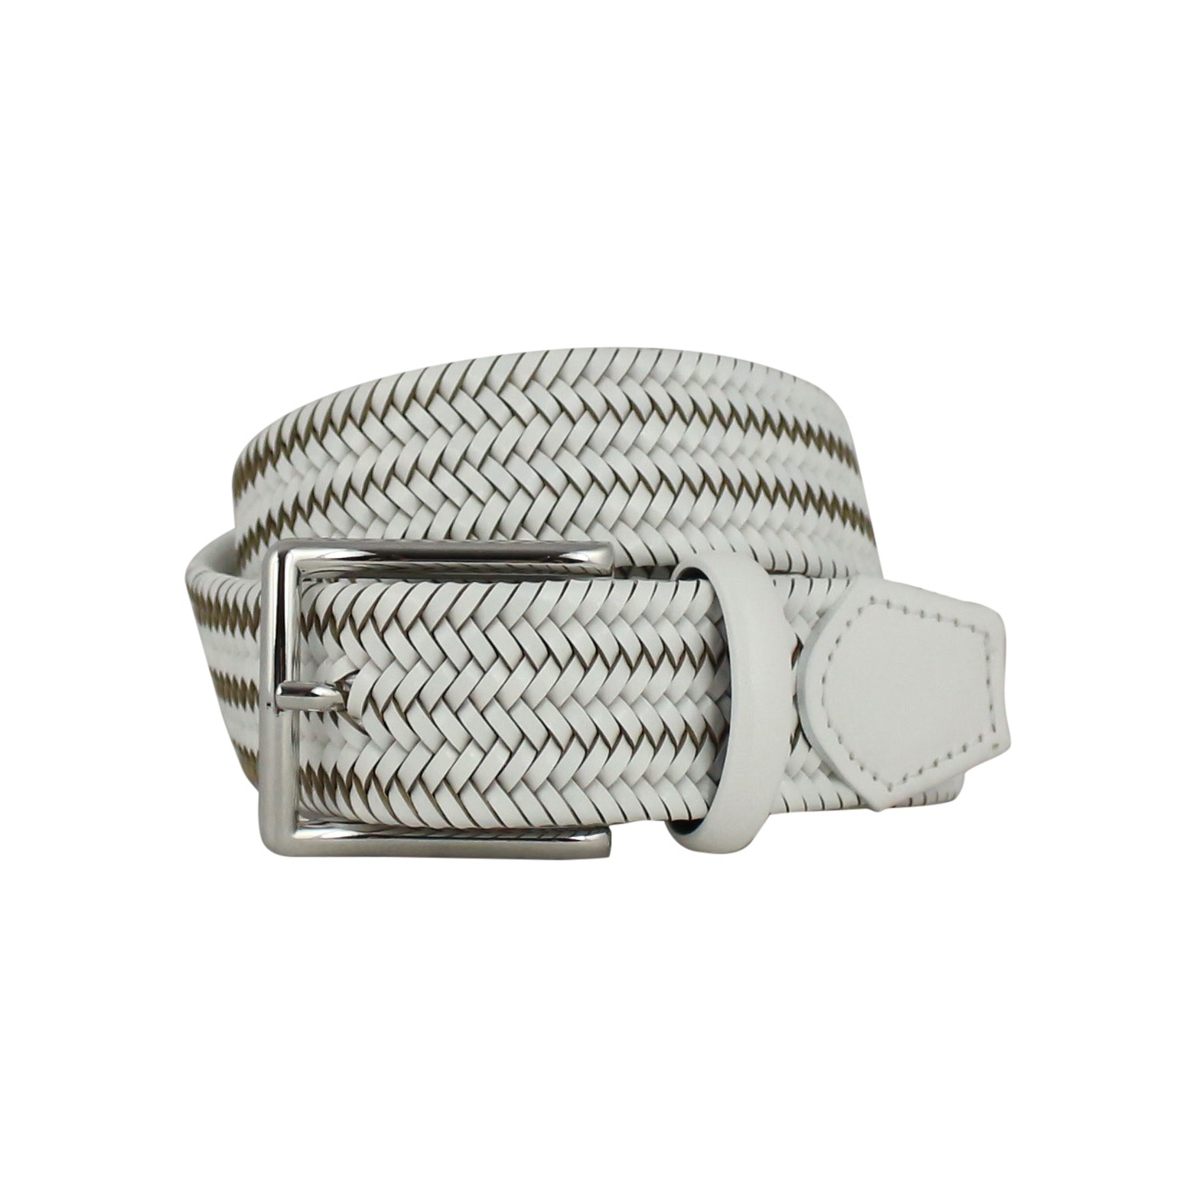 Braid belt H 32 White SERGIO GAVAZZENI